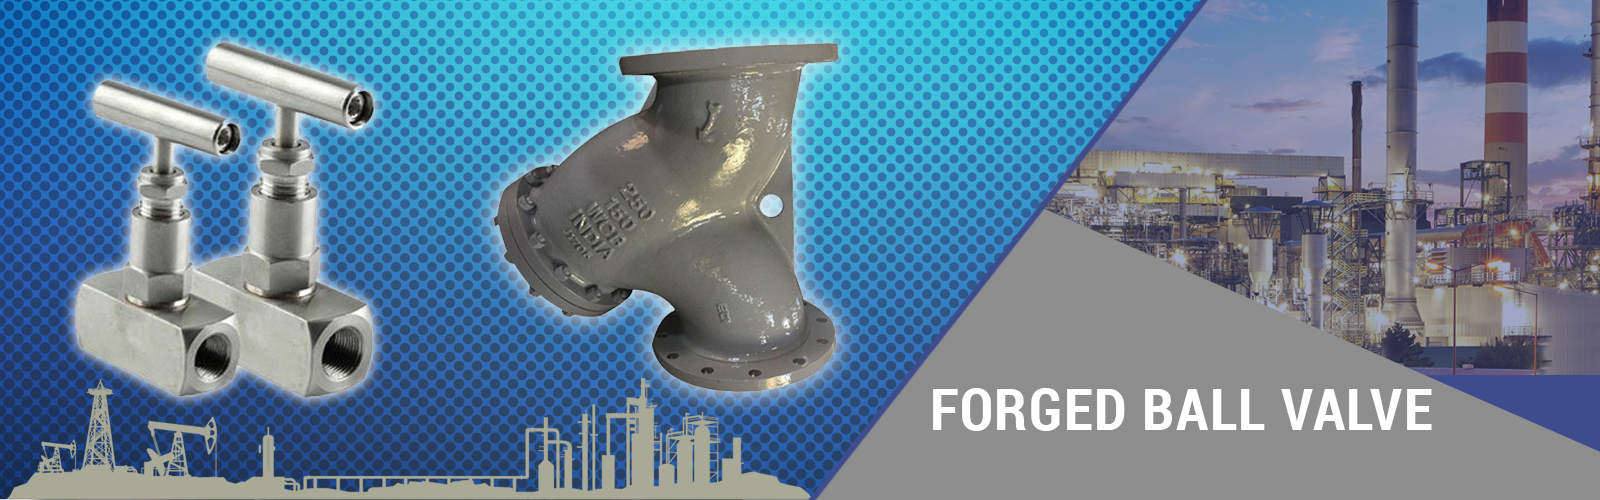 Forged ball Valves Manufacturer and Exporter